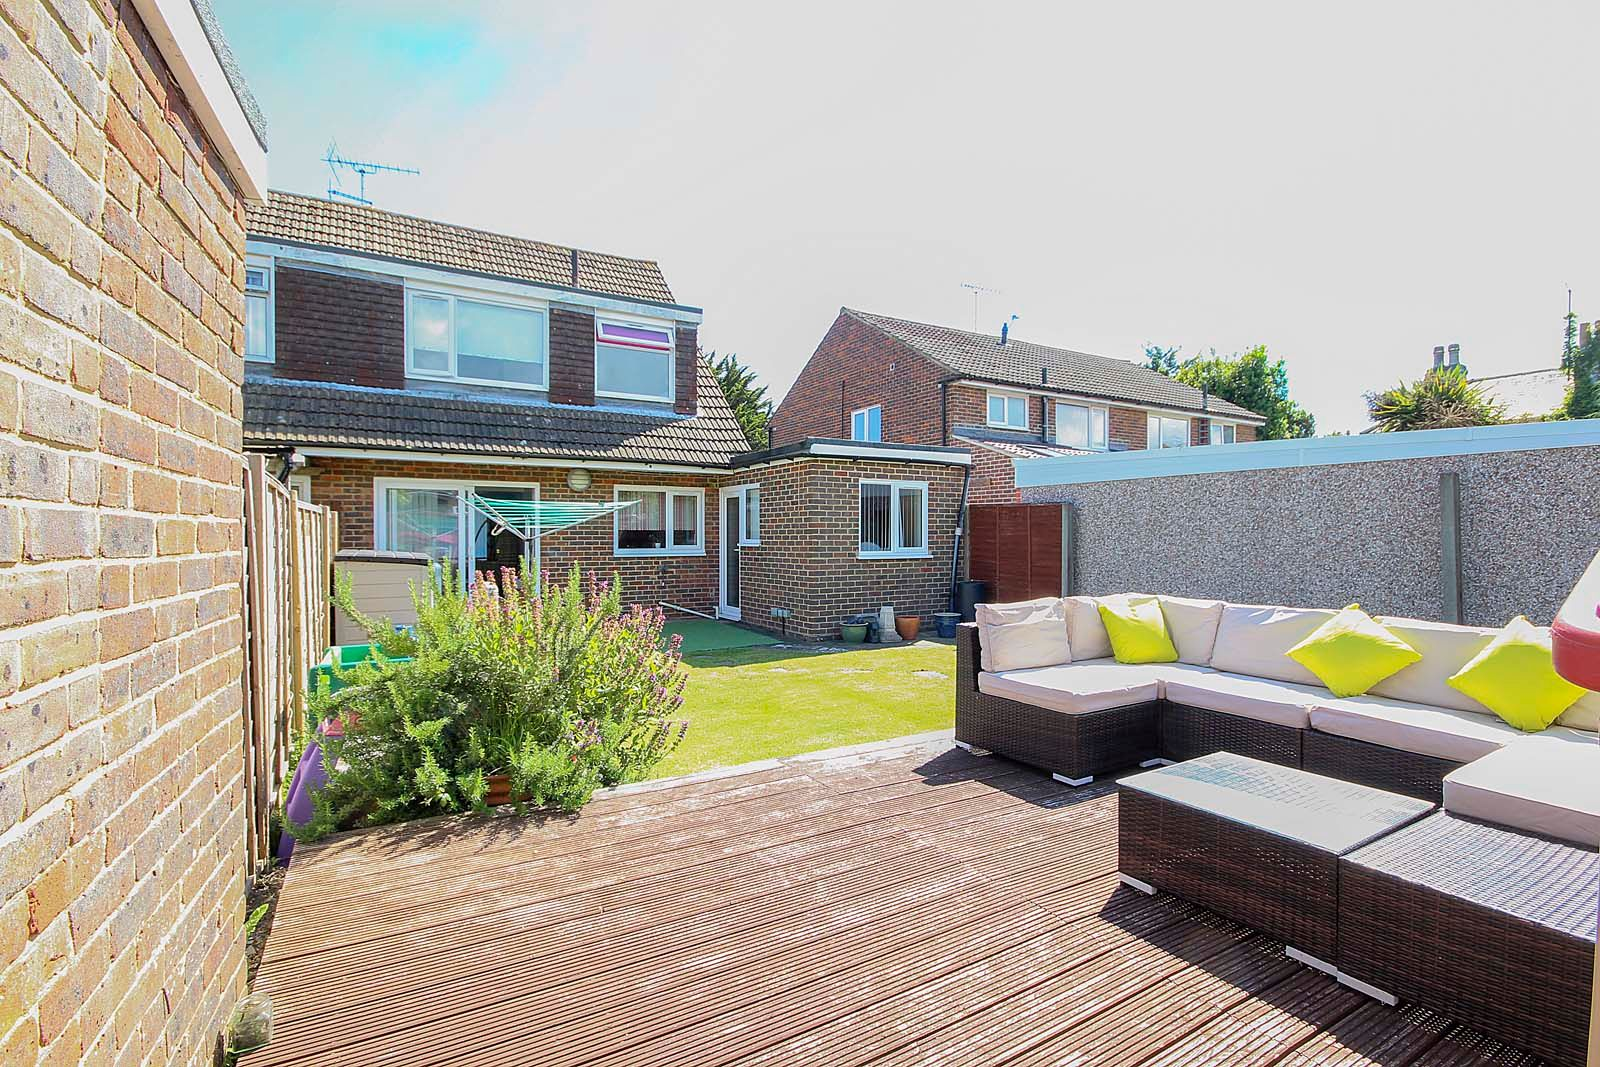 3 bed house for sale in Old Worthing Road  - Property Image 9